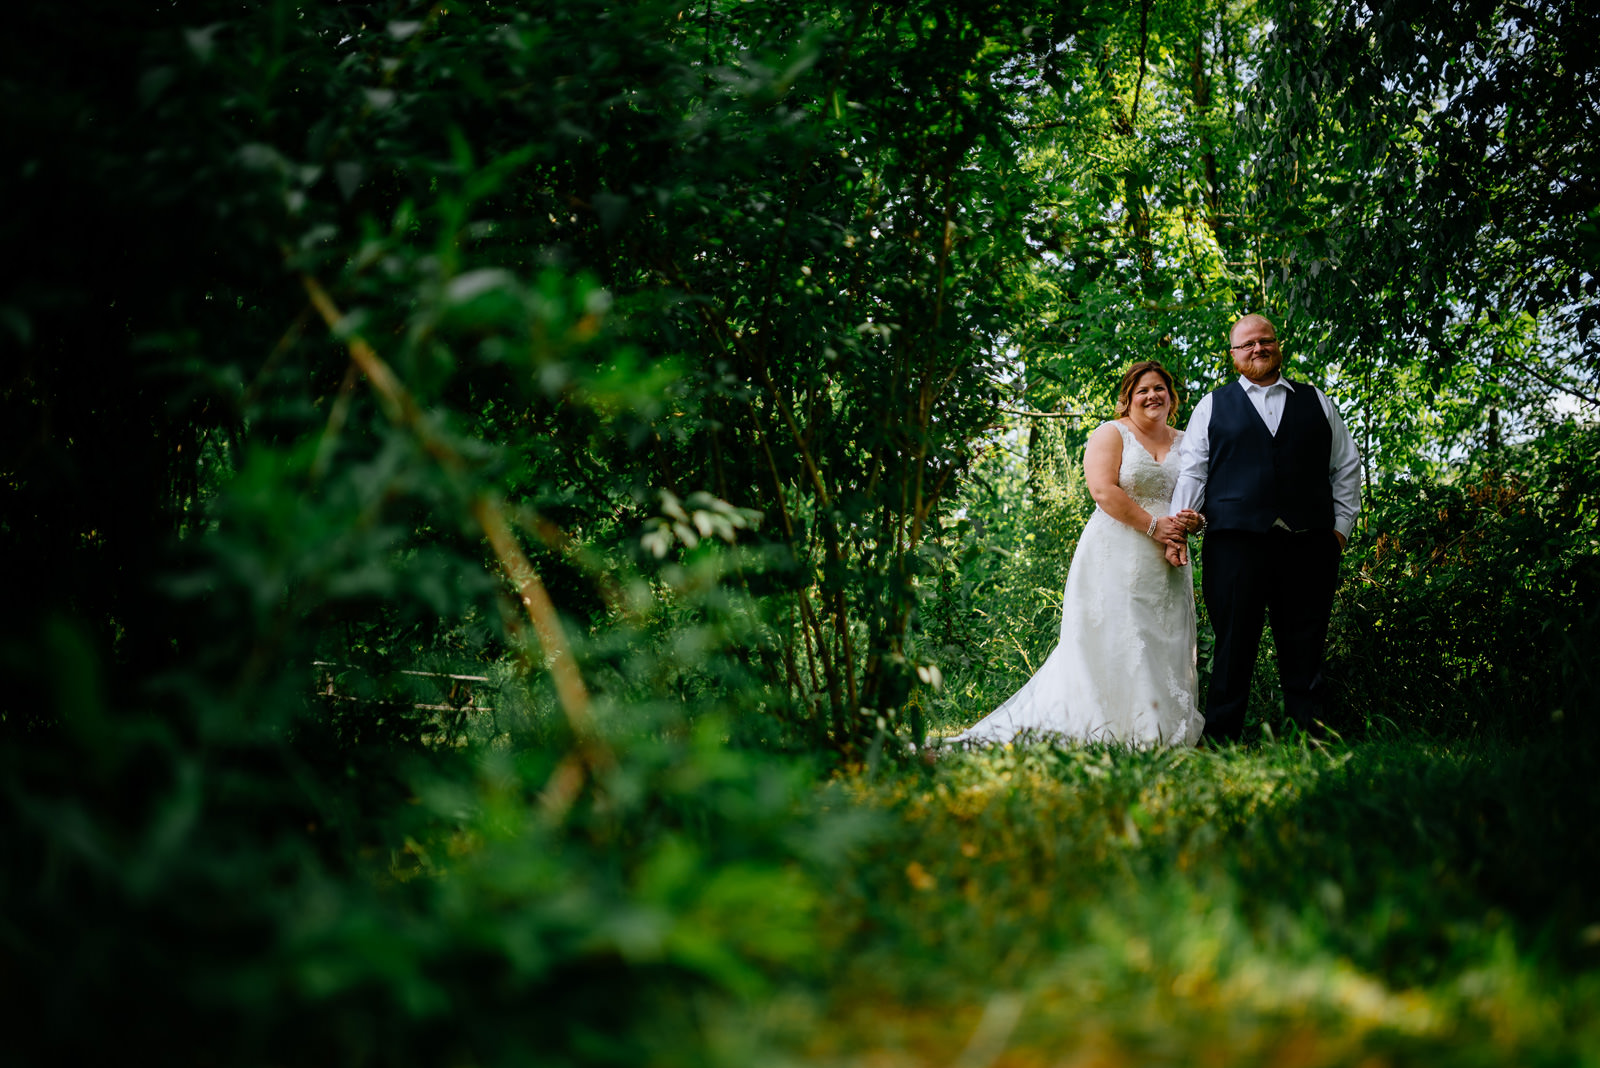 oberports bride groom picture cheat river wedding